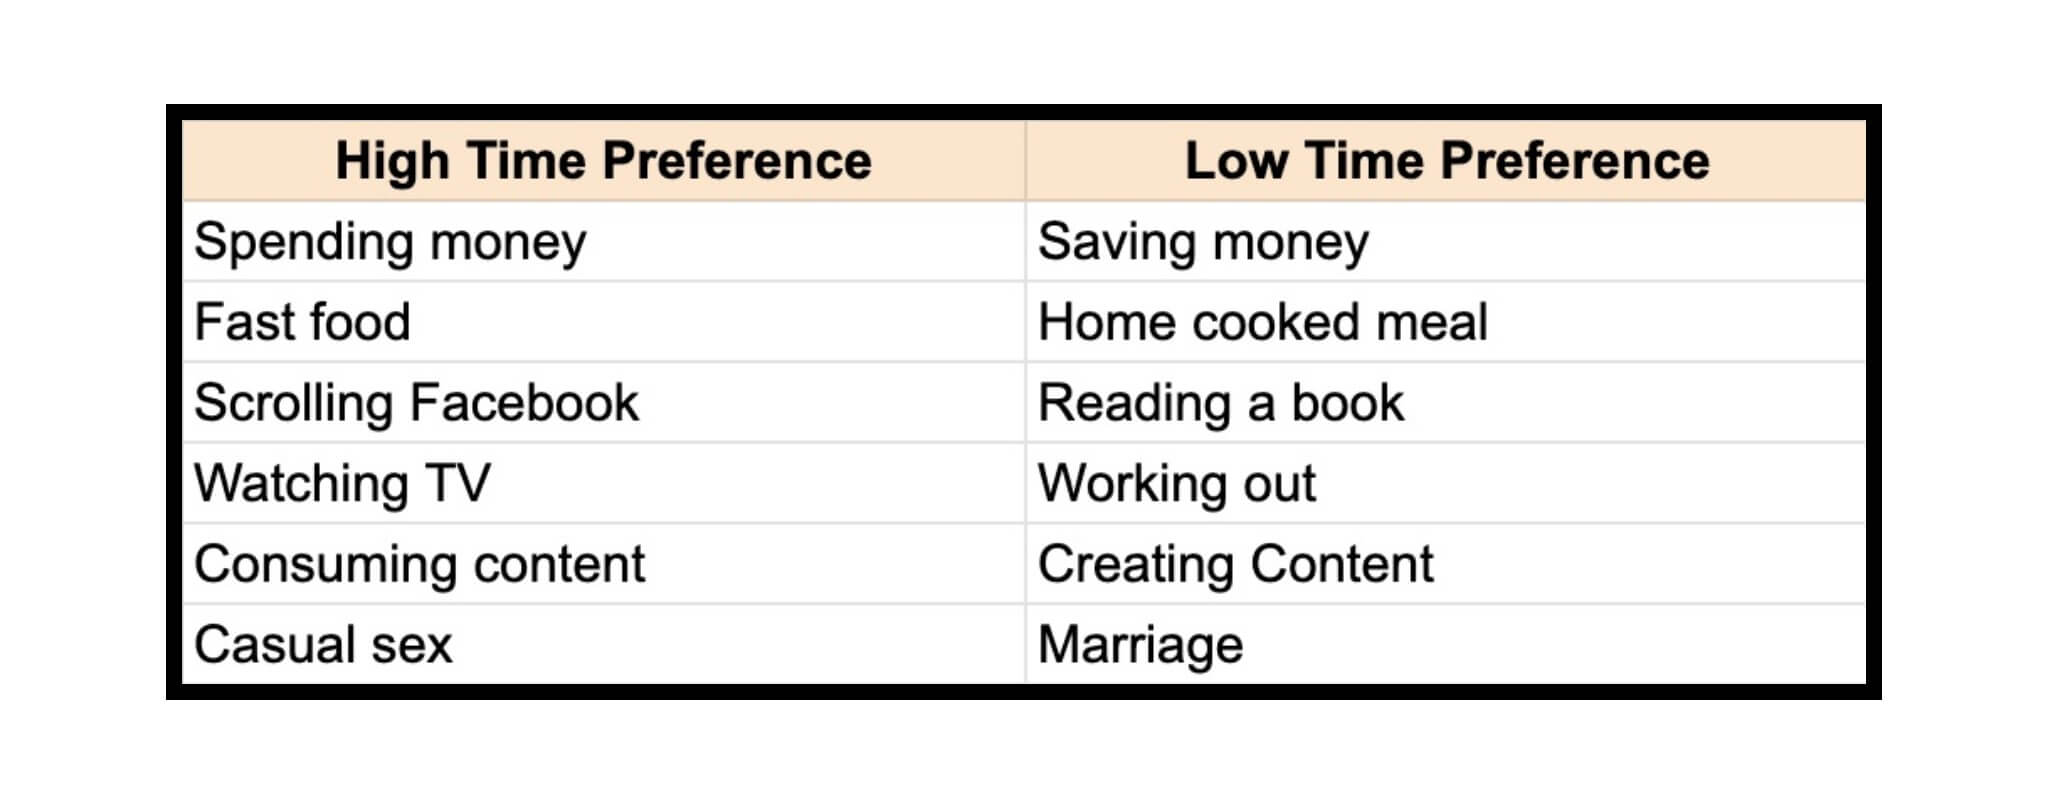 High time preference vs. low time preference